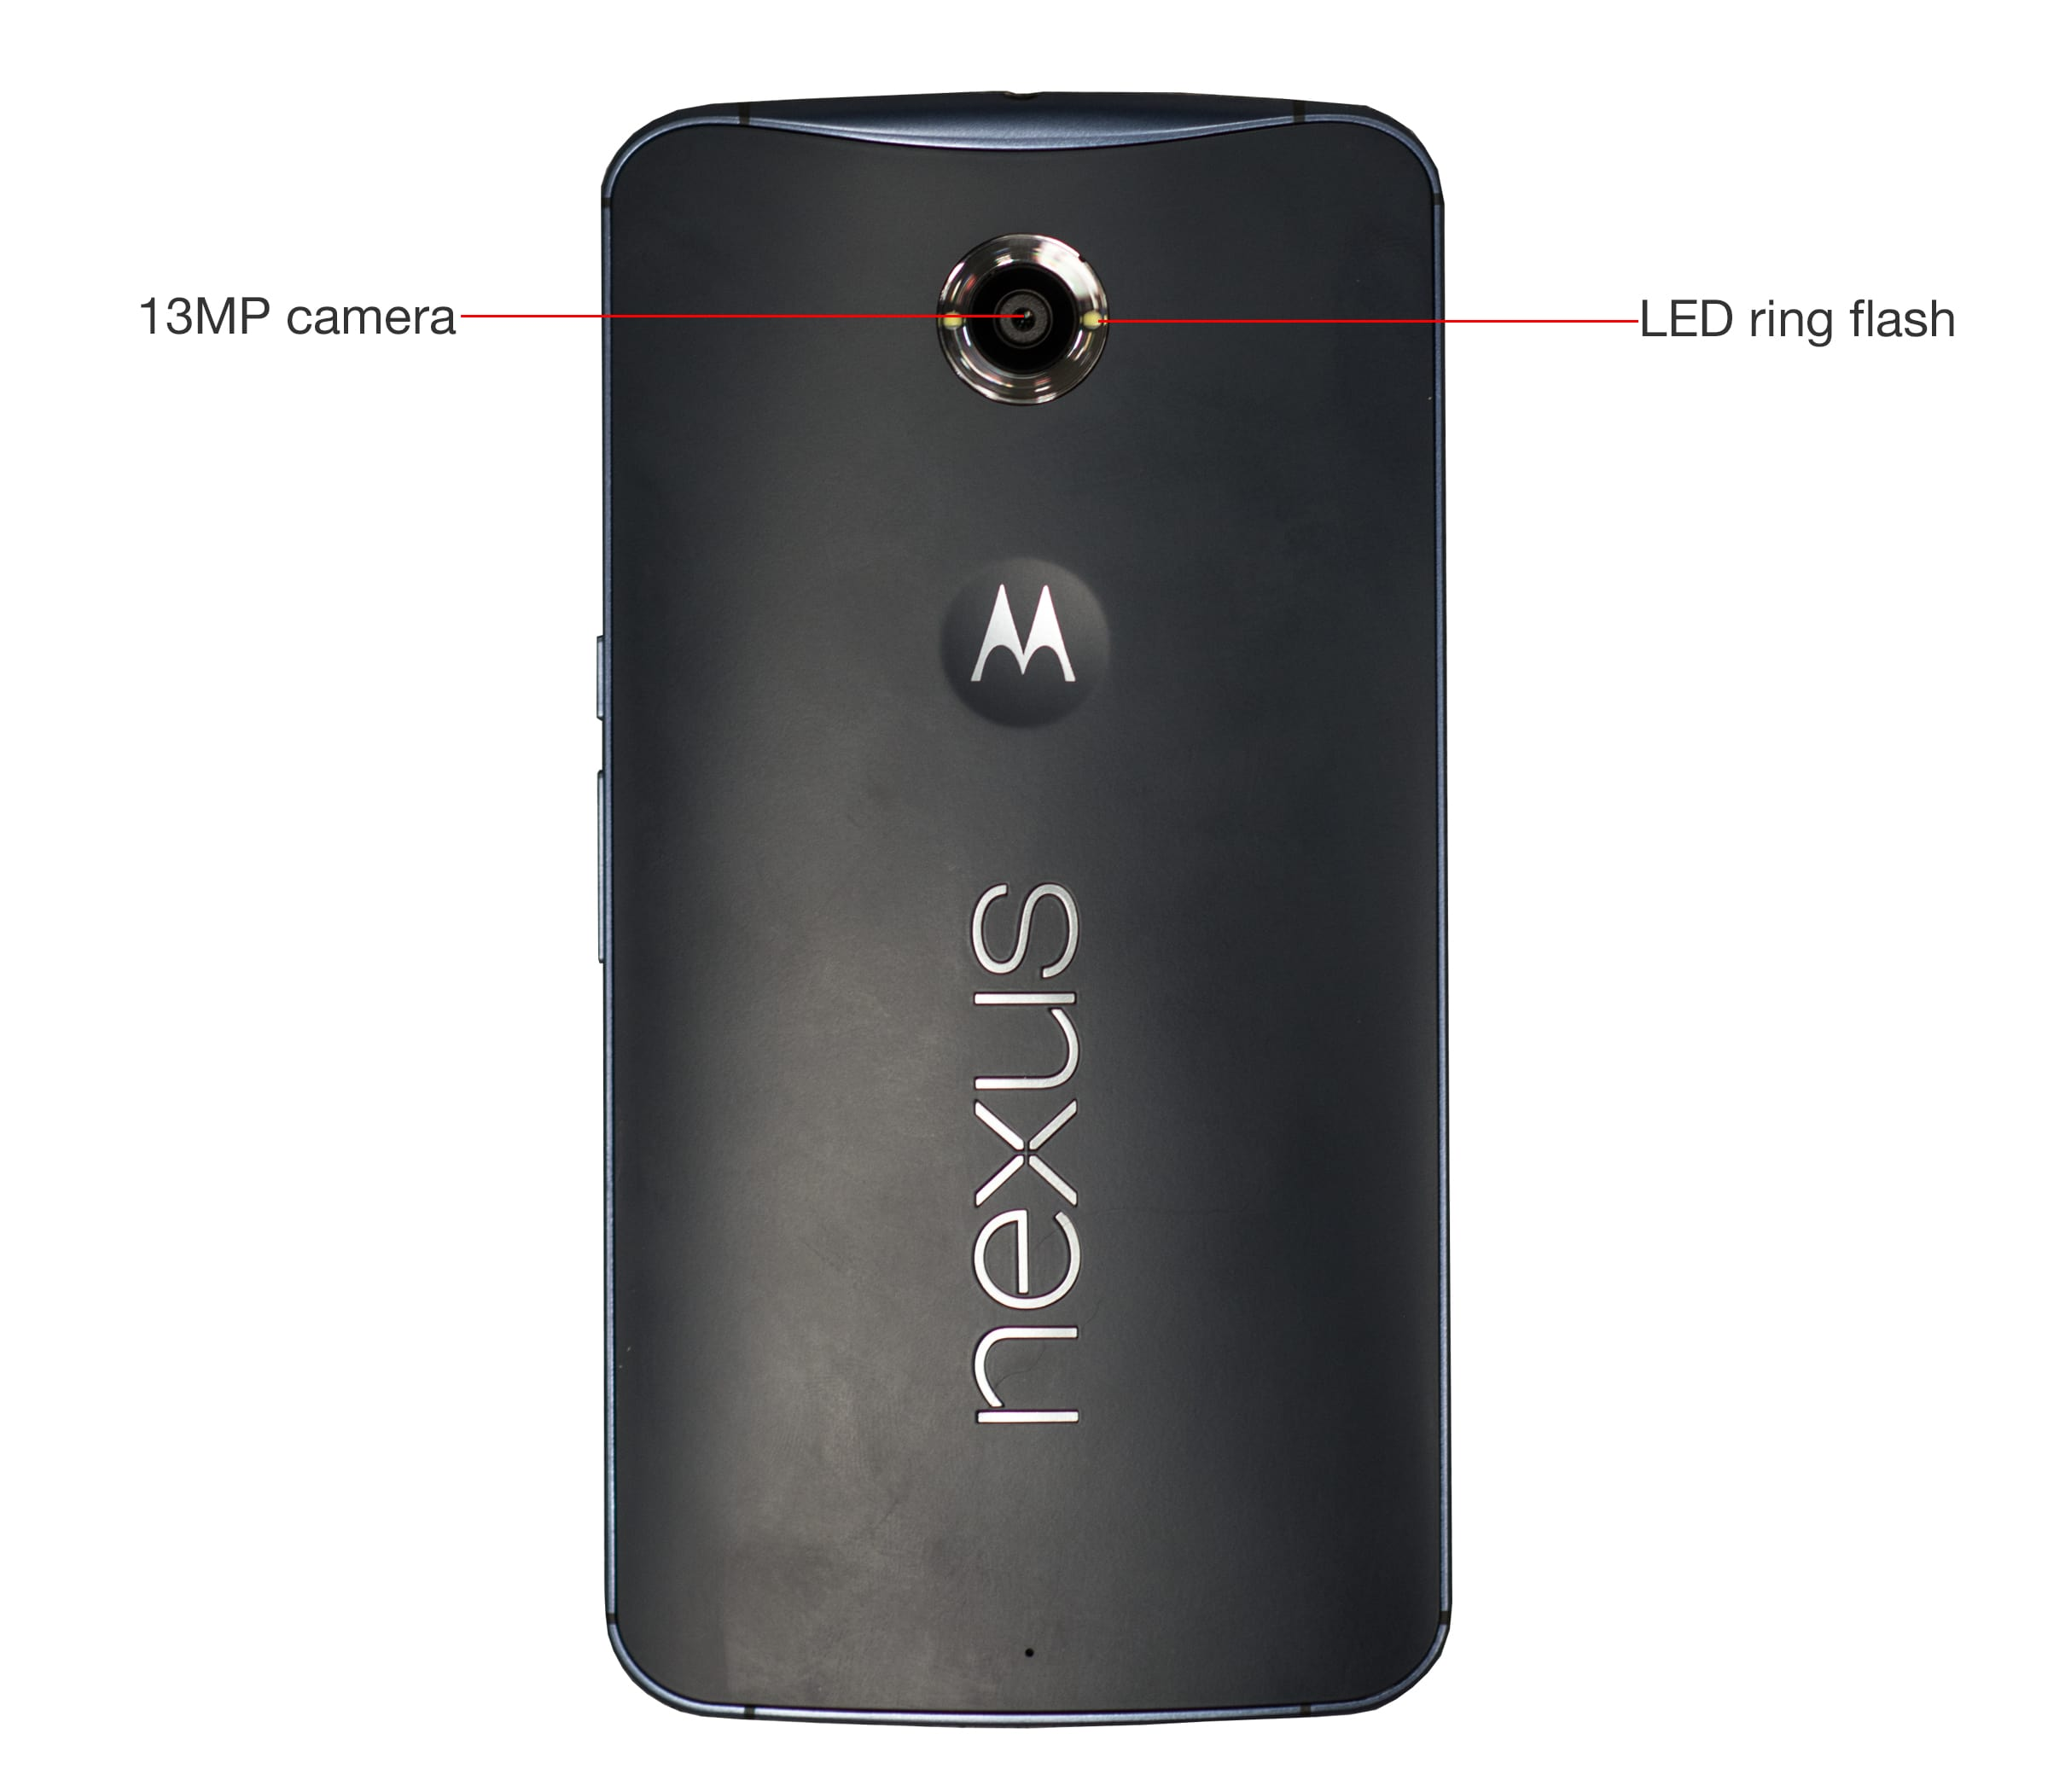 A callout image of the Google Nexus 6's back.